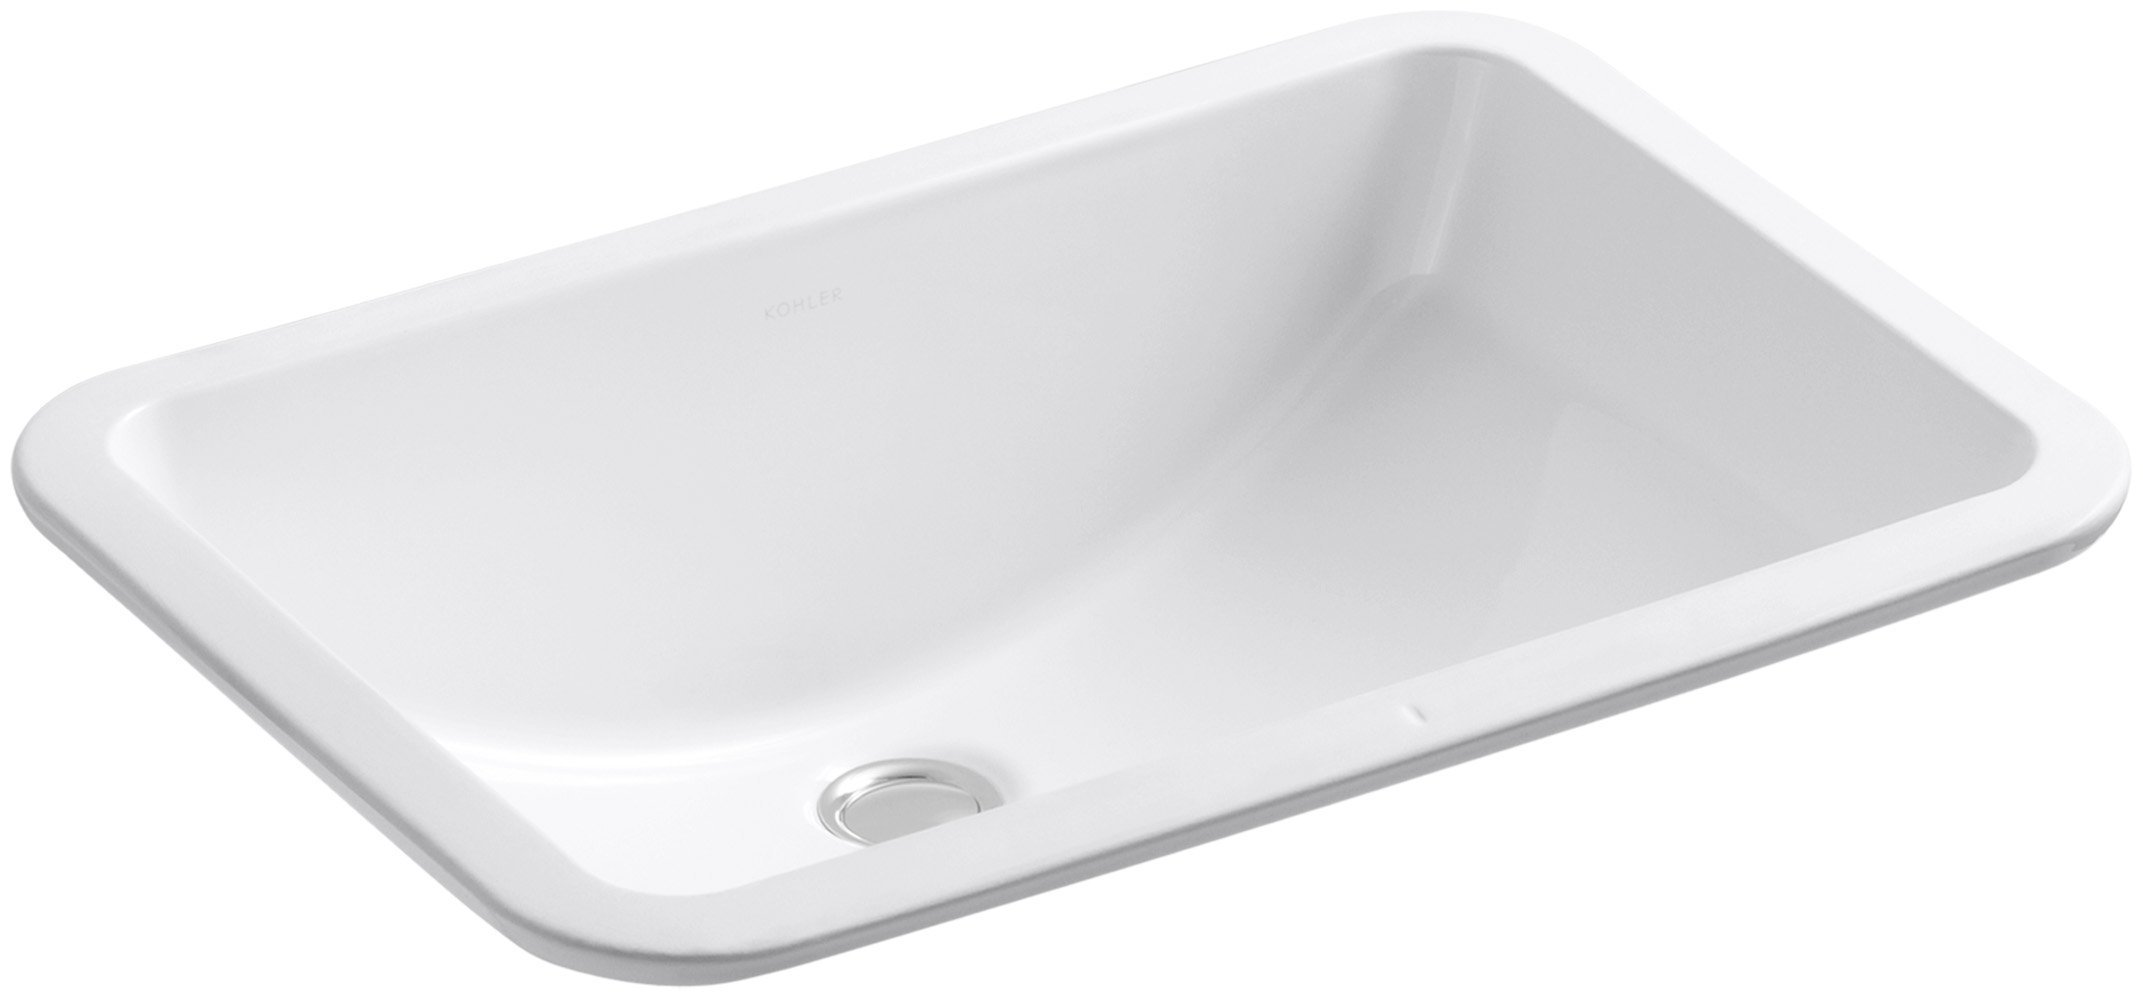 KOHLER K-2214-0 Ladena Undercounter Bathroom Sink, White by Kohler